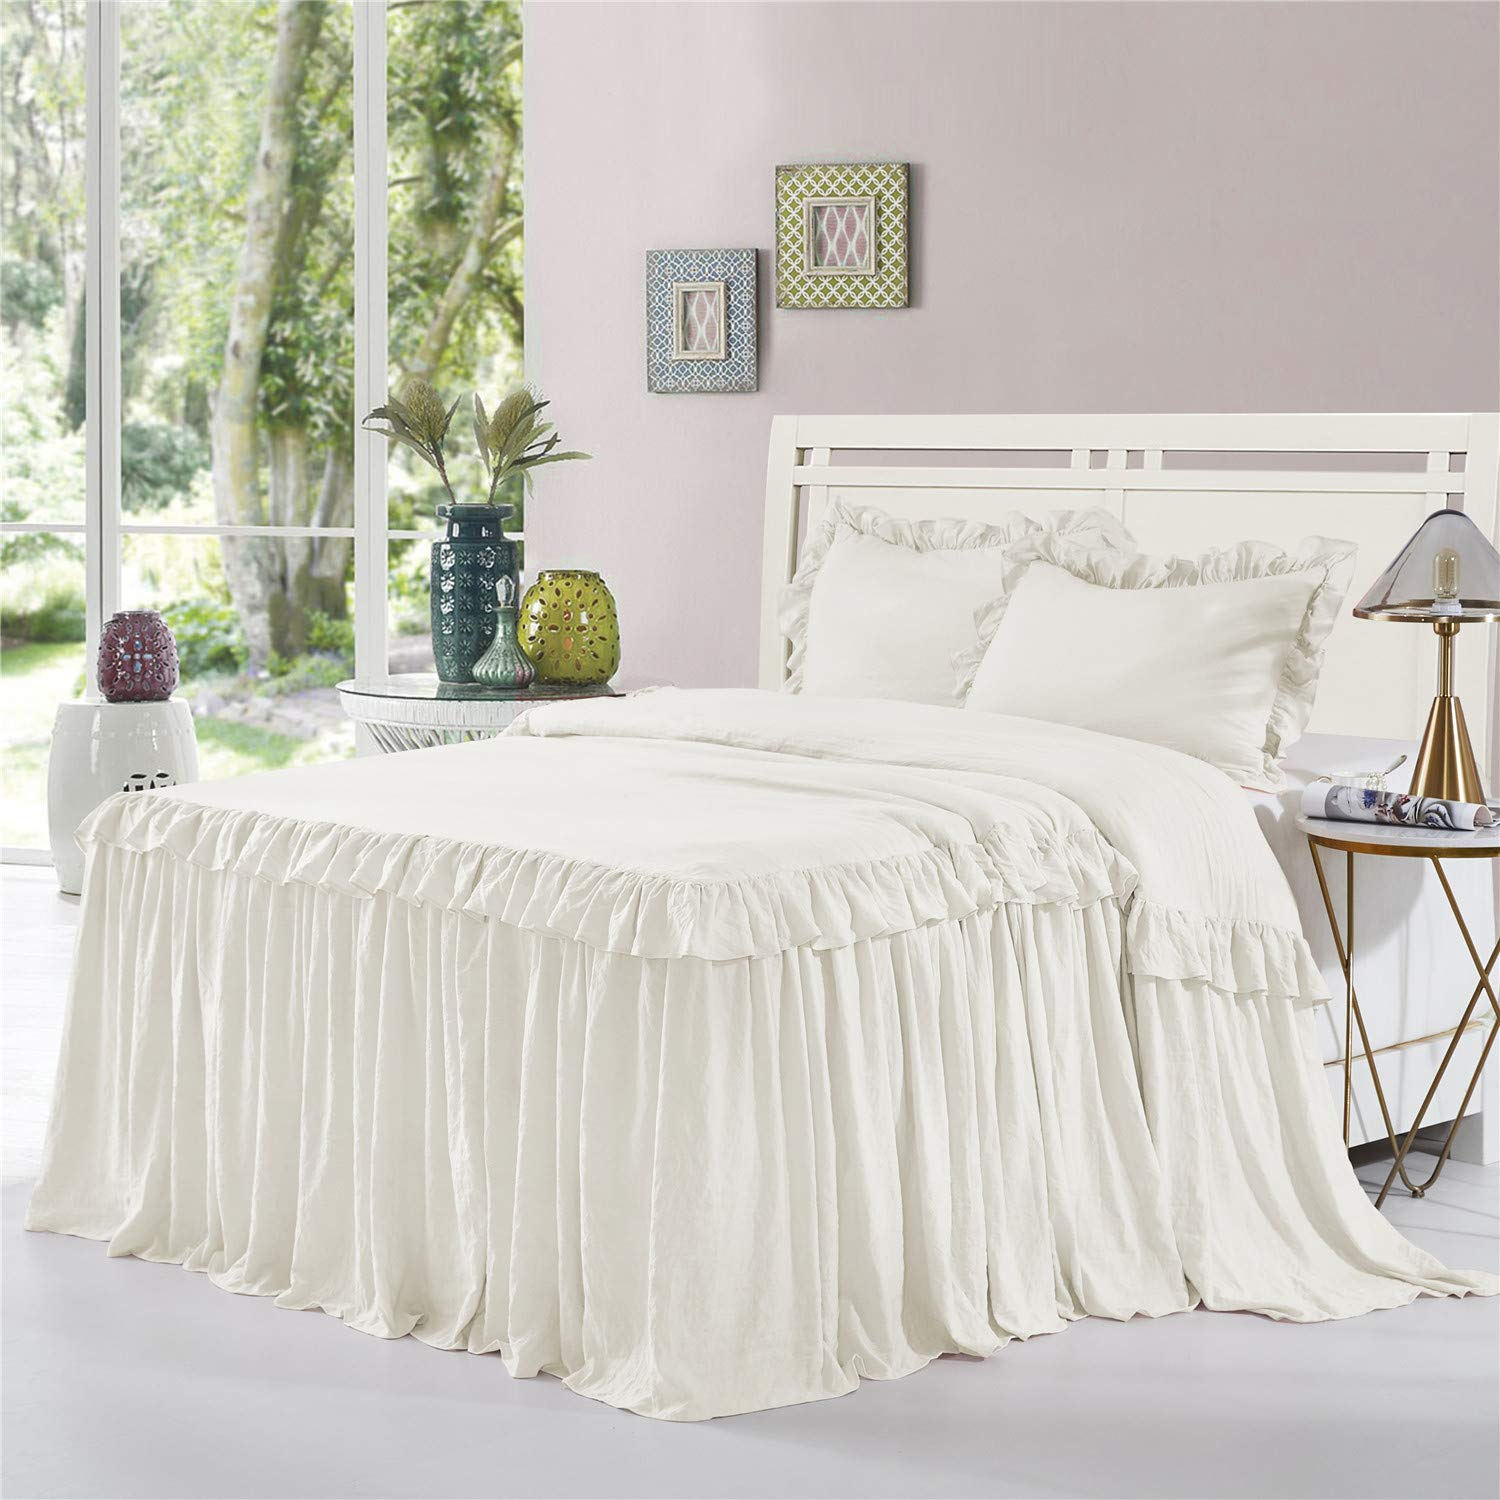 HIG 3 Piece Ruffle Skirt Bedspread Set Queen-Ivory Color 30 inches Drop Ruffled Style Bed Skirt Coverlets Bedspreads Dust Ruffles- Alina Bedding Collections Queen Size-1 Bedspread, 2 Standard Shams